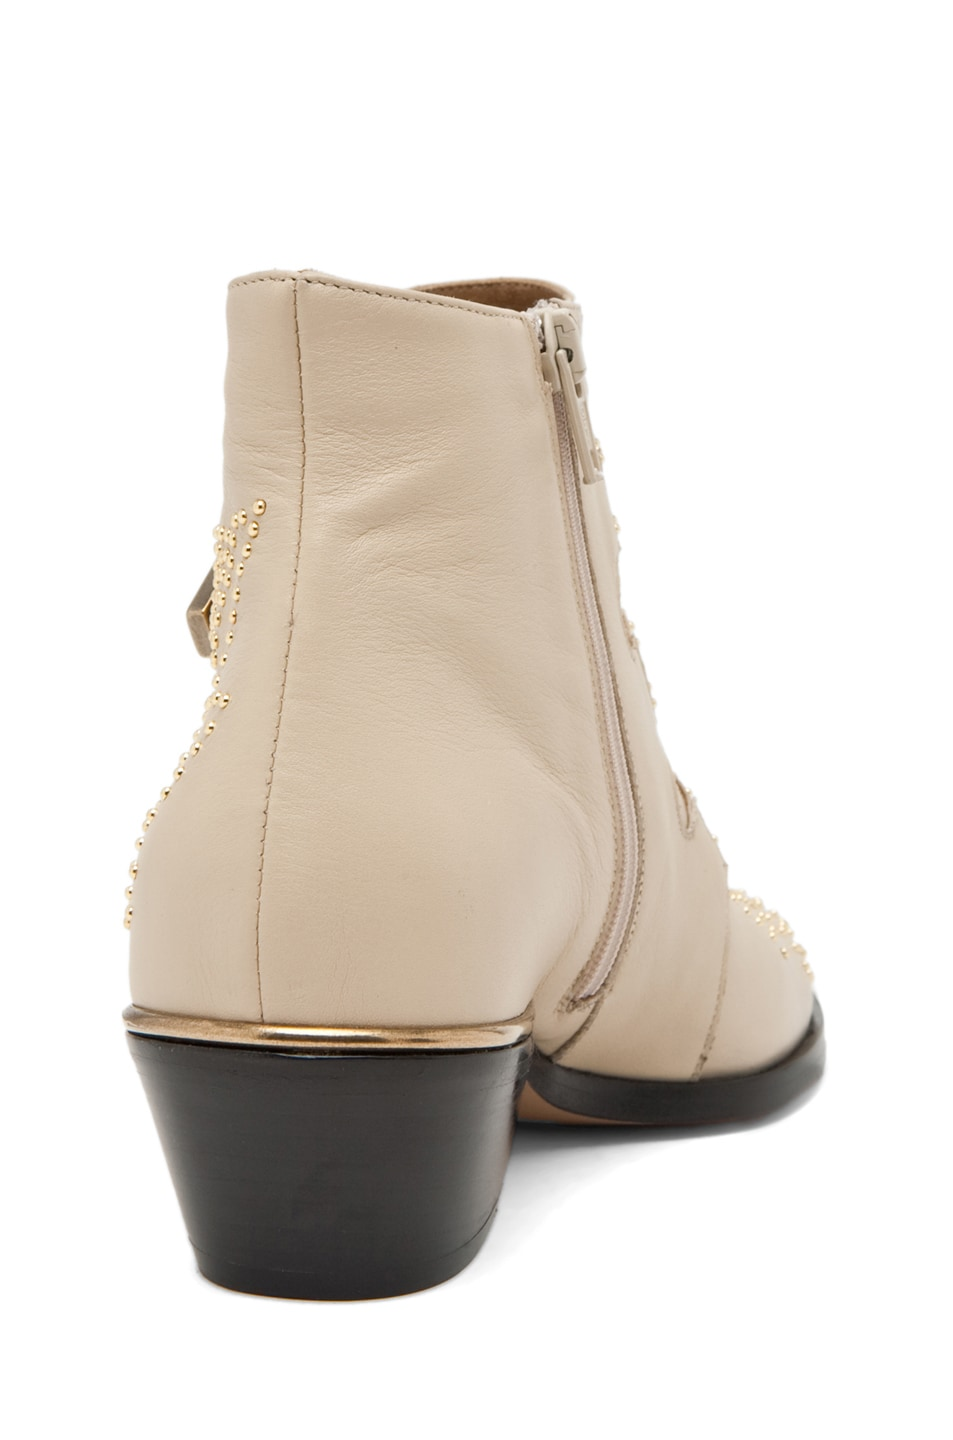 Image 3 of Chloe Susanna Leather Studded Bootie in Cream